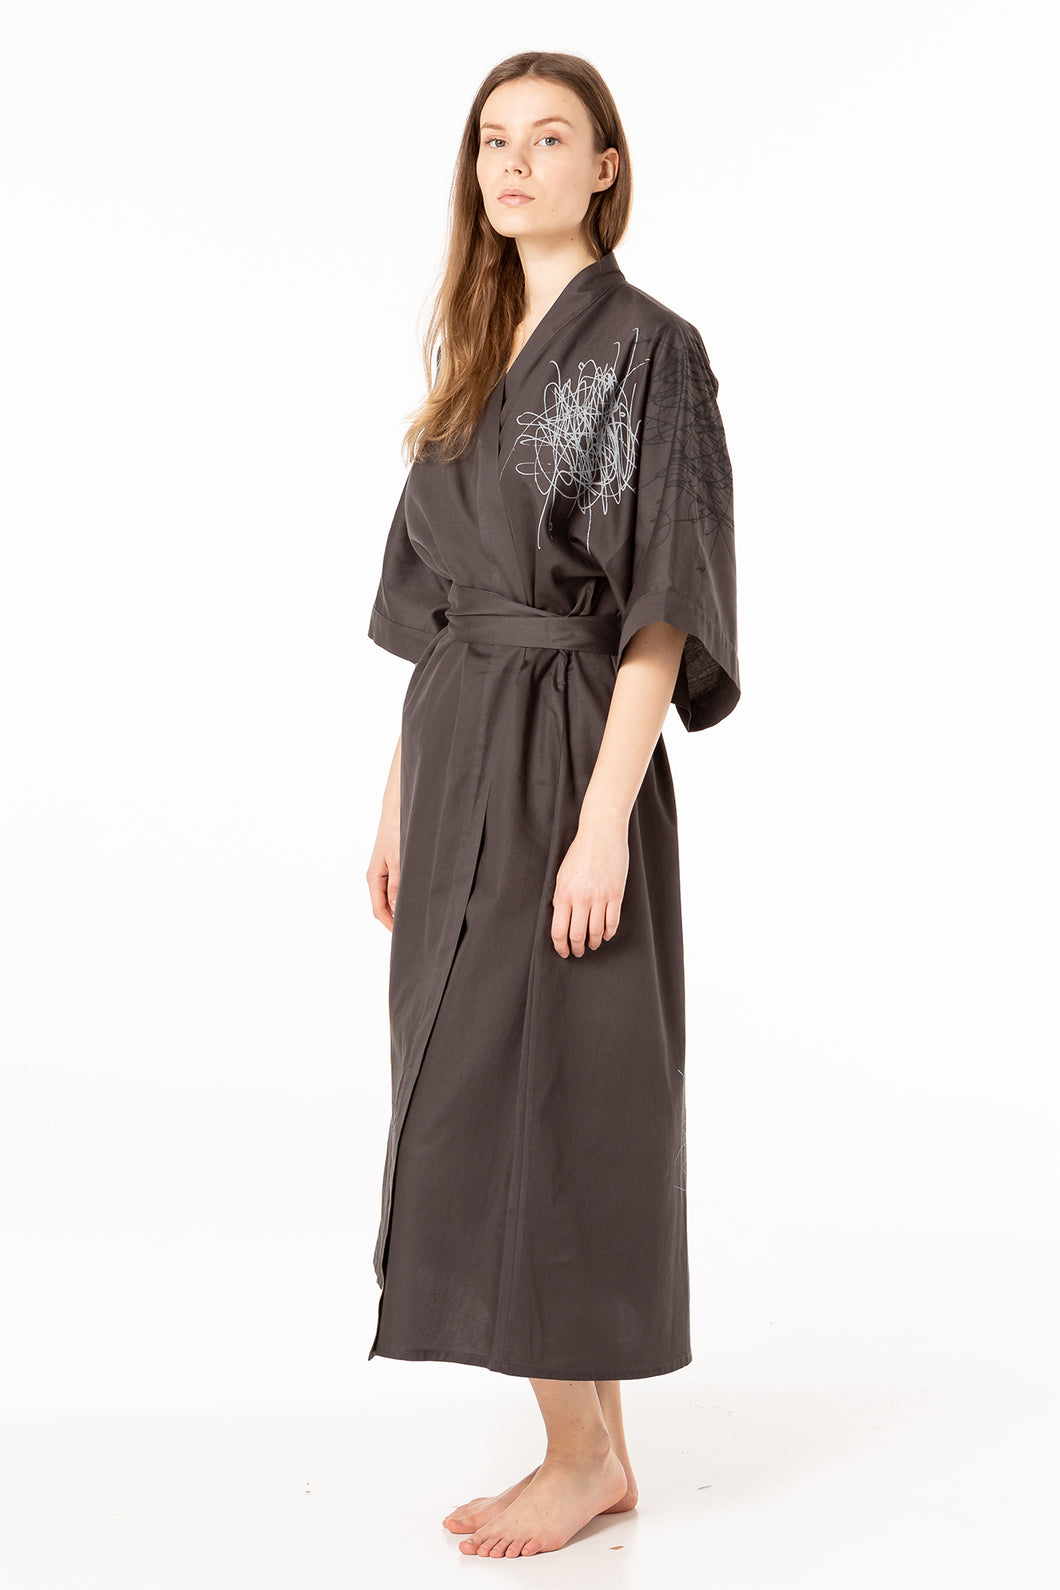 Dressing gown of greyish brown